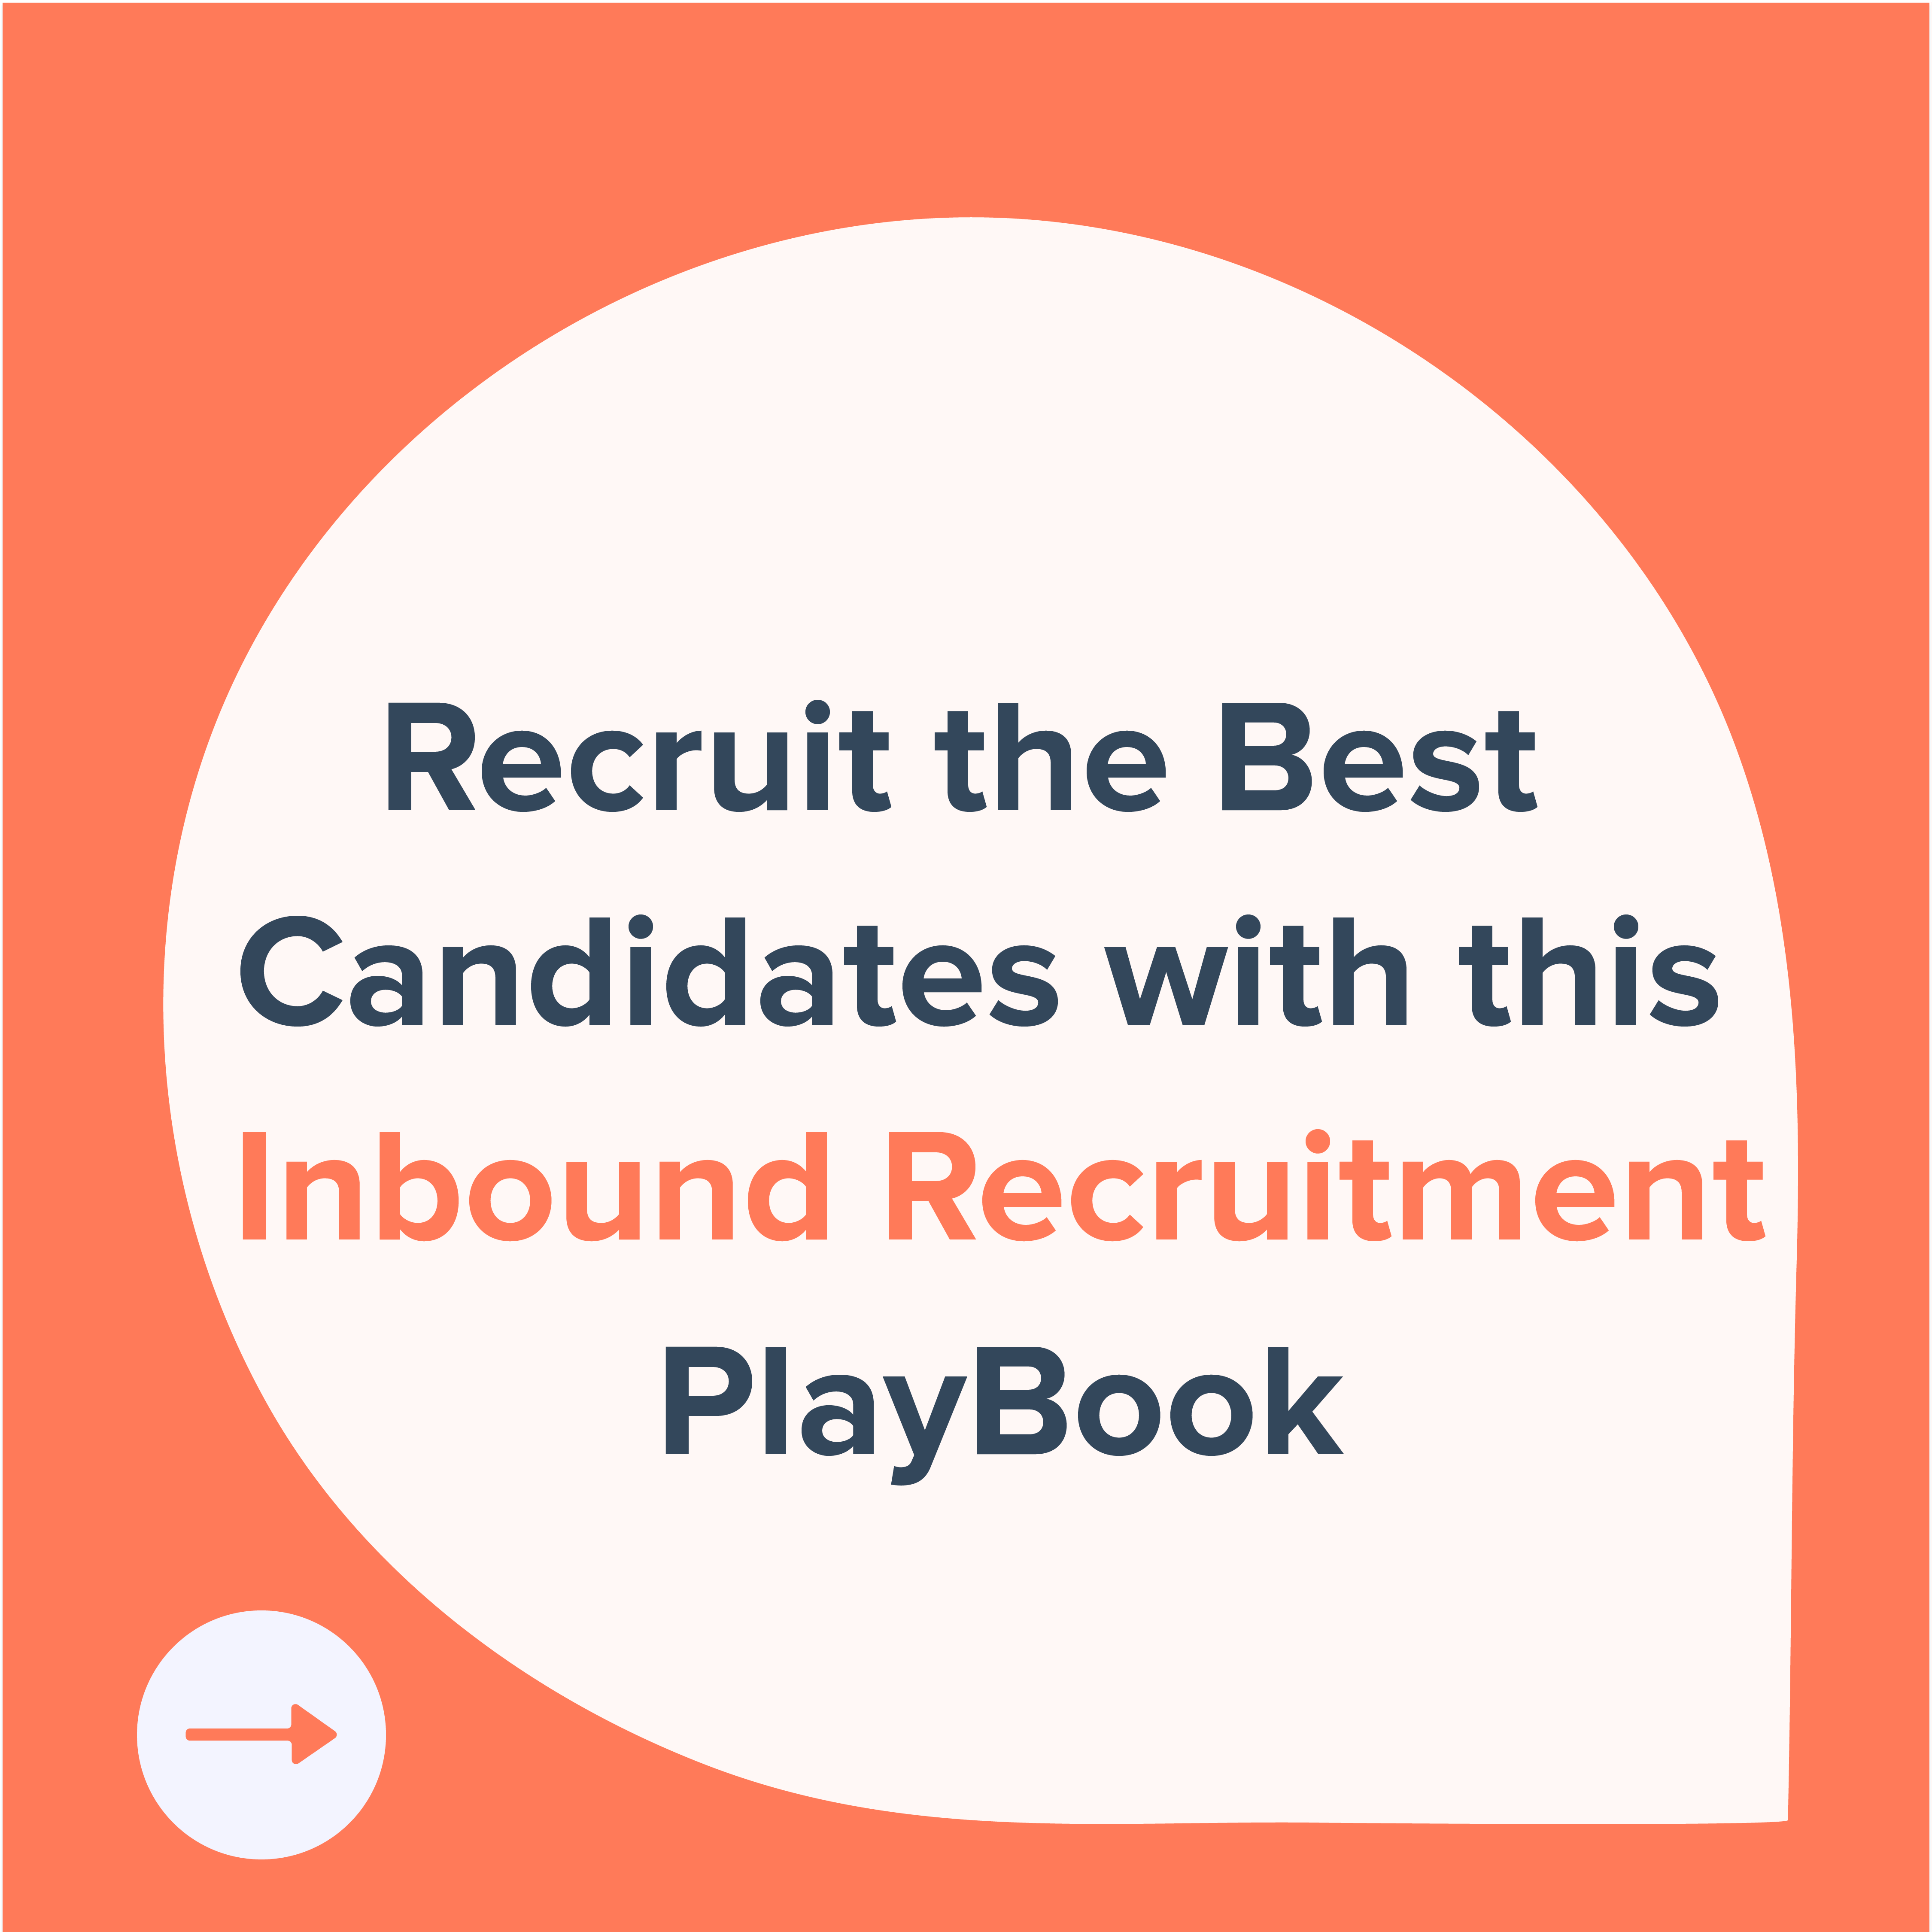 recruit the best candidates with this inbound recruitment playbook-01